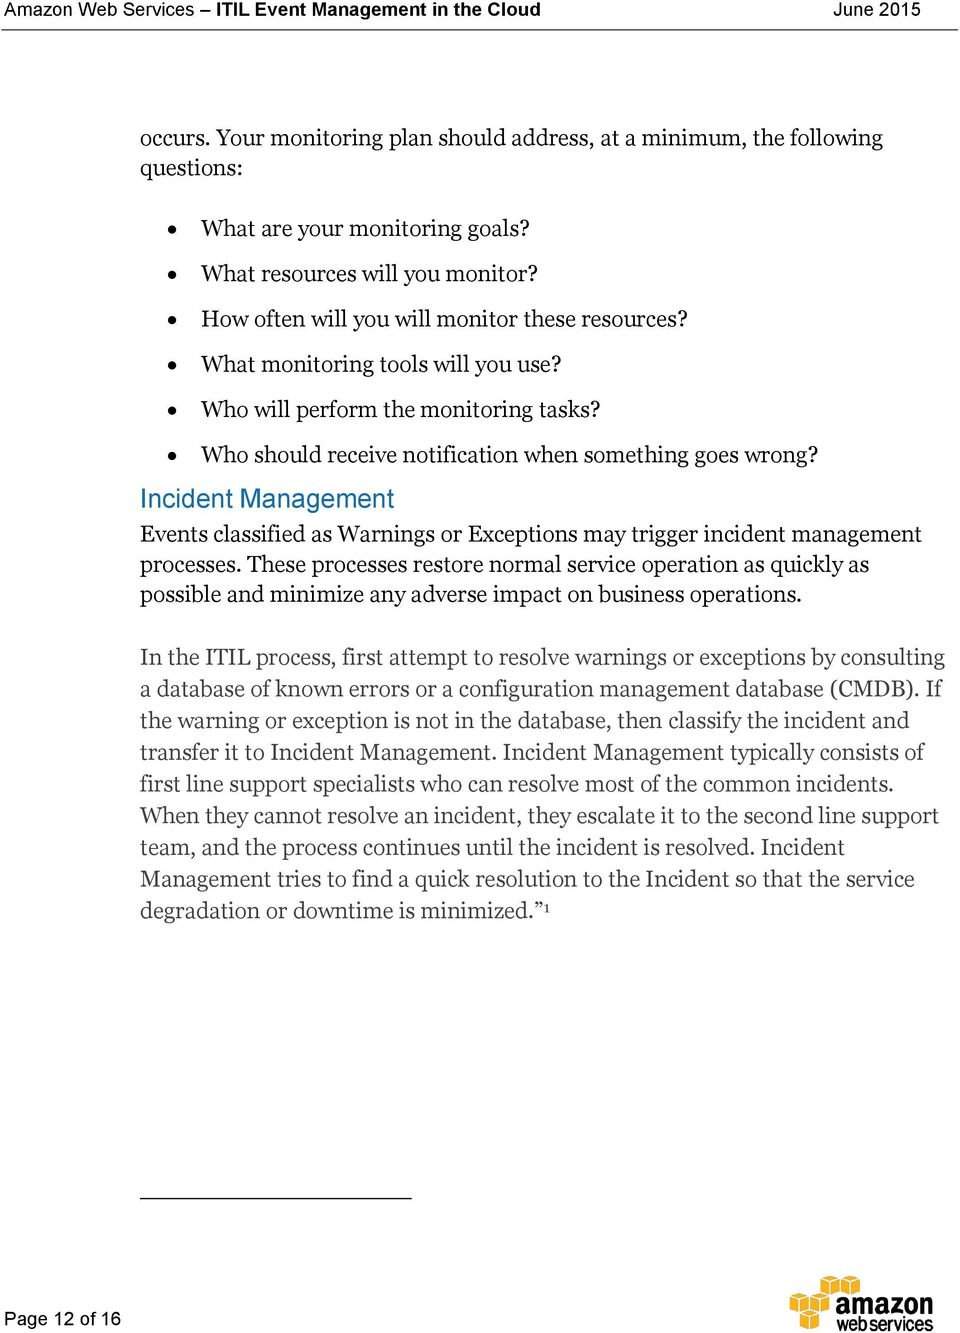 Incident Management Events classified as Warnings or Exceptions may trigger incident management processes.